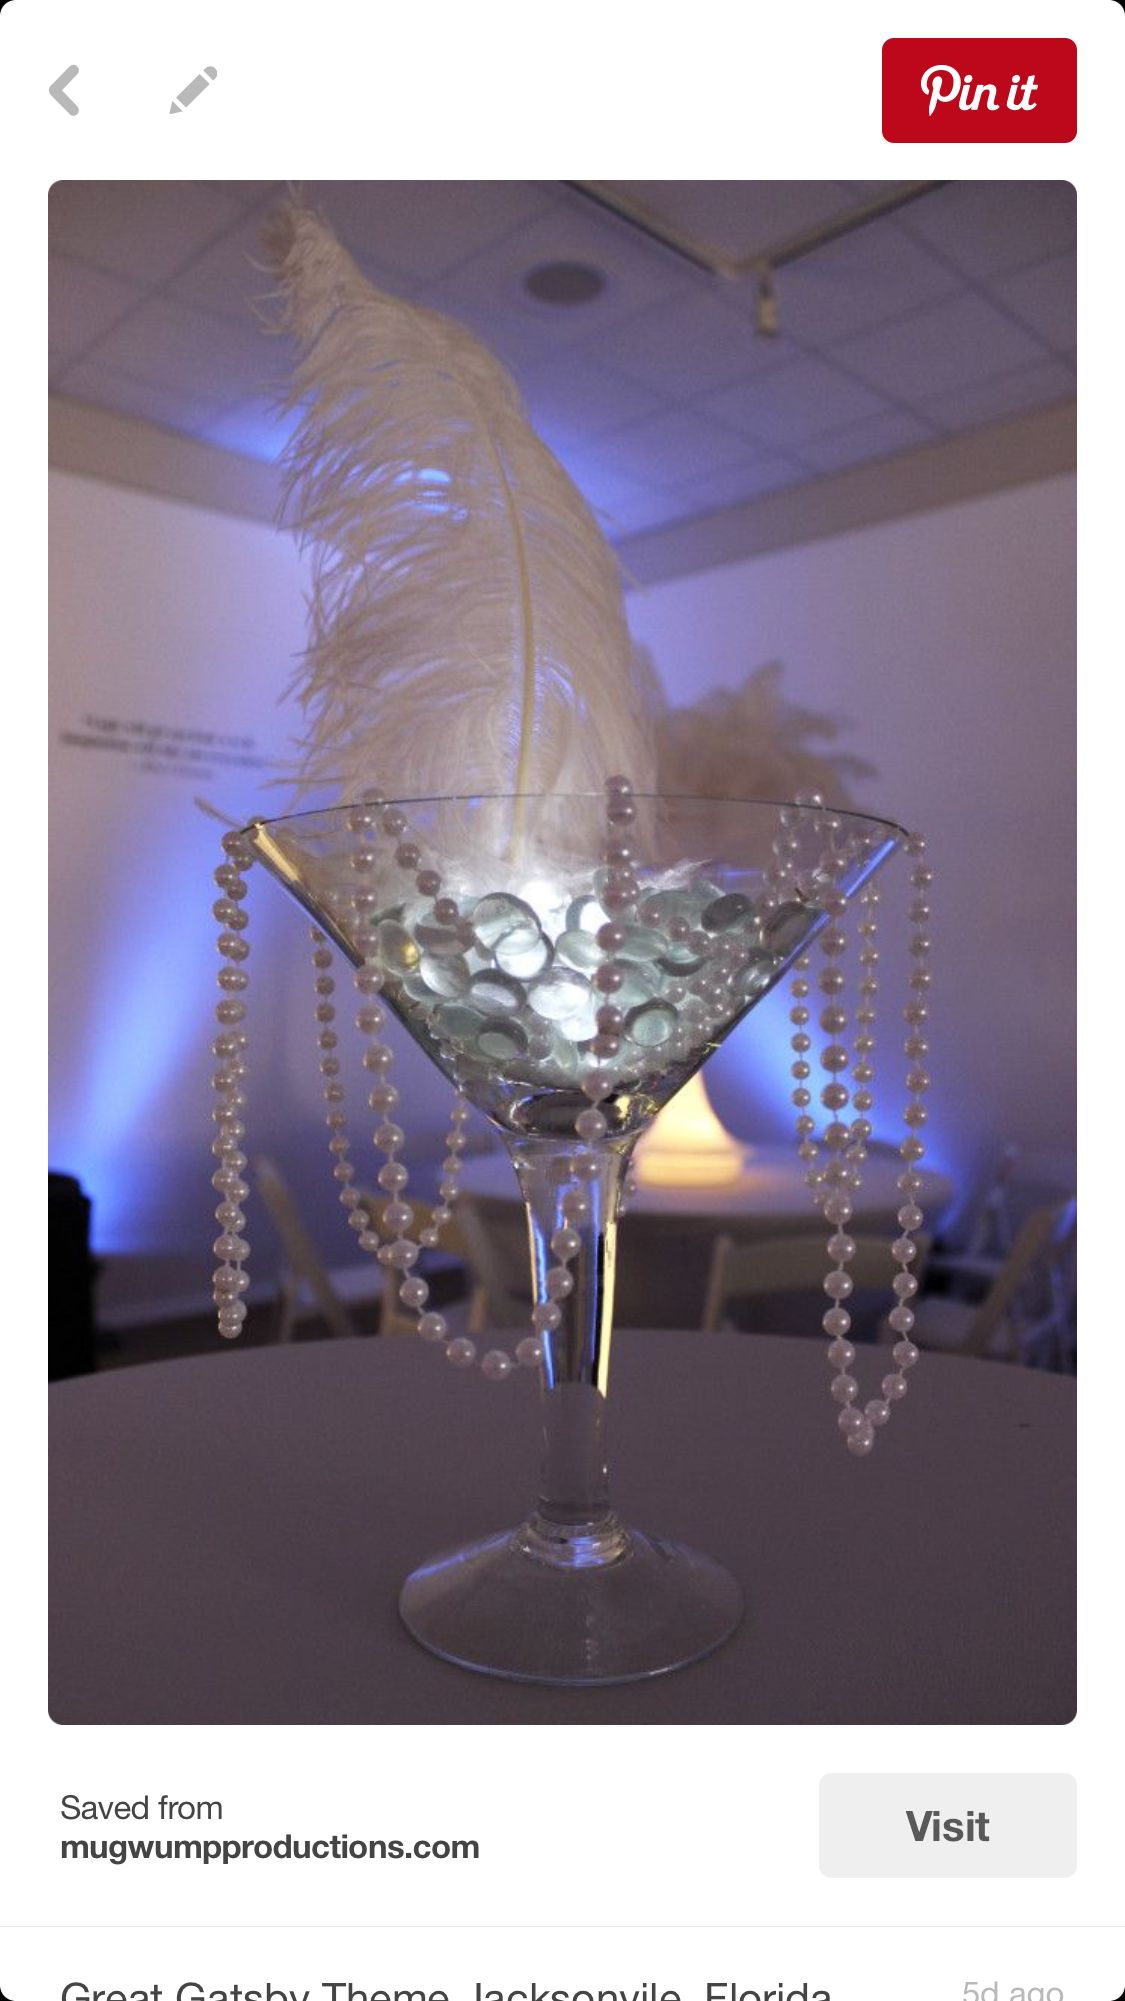 1920's themed wedding decorations  Martini Glass with Floralytes  Martini glass  Pinterest  Martinis